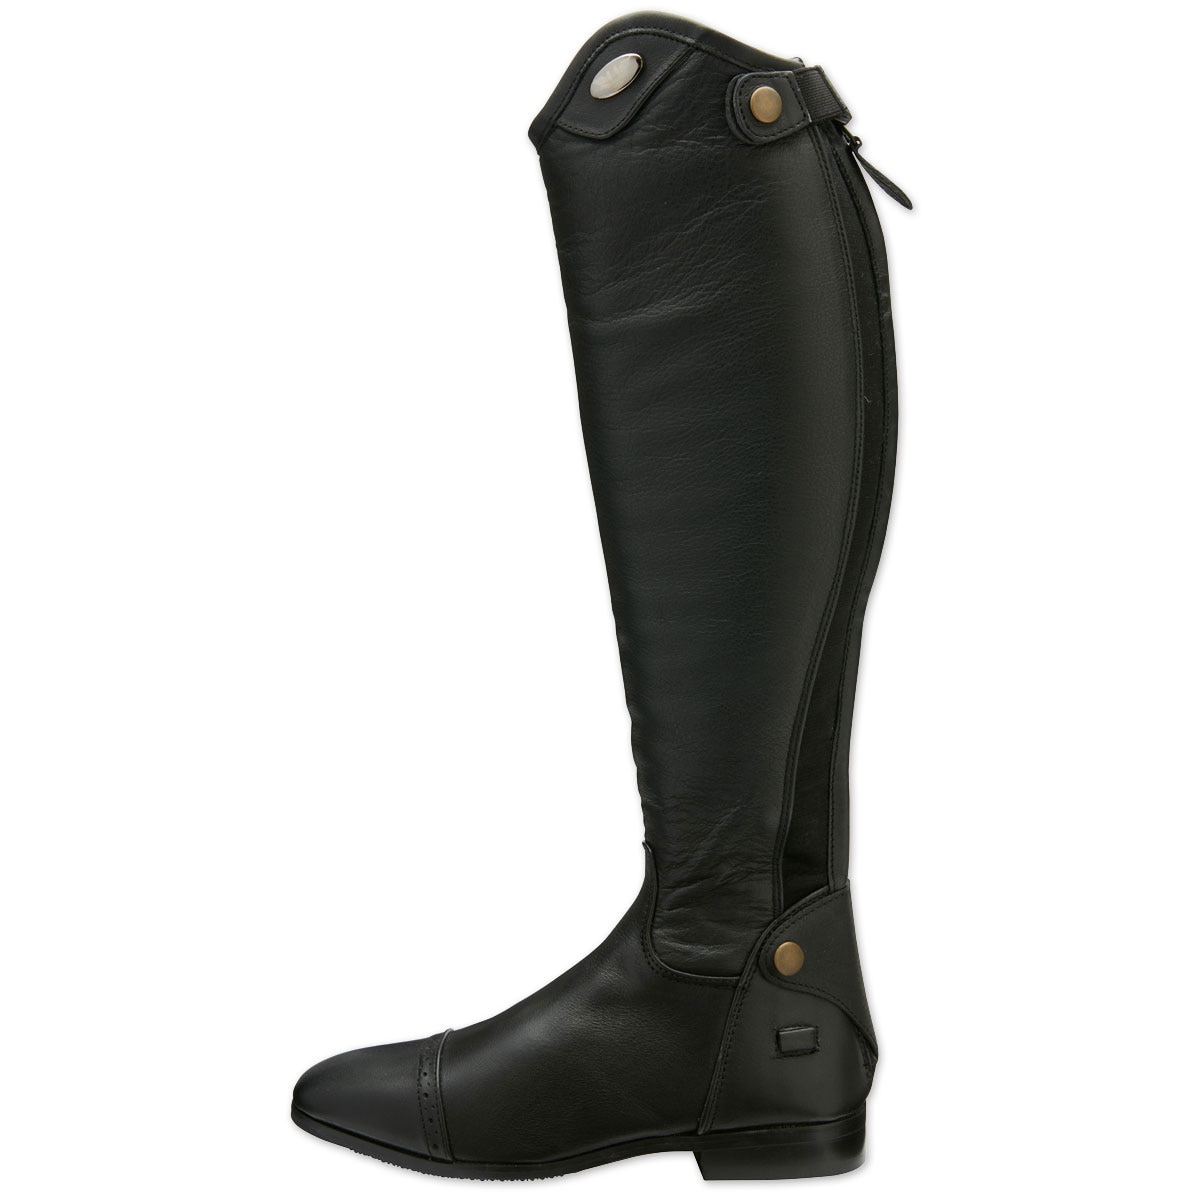 Tuff Rider Regal Dress Boot